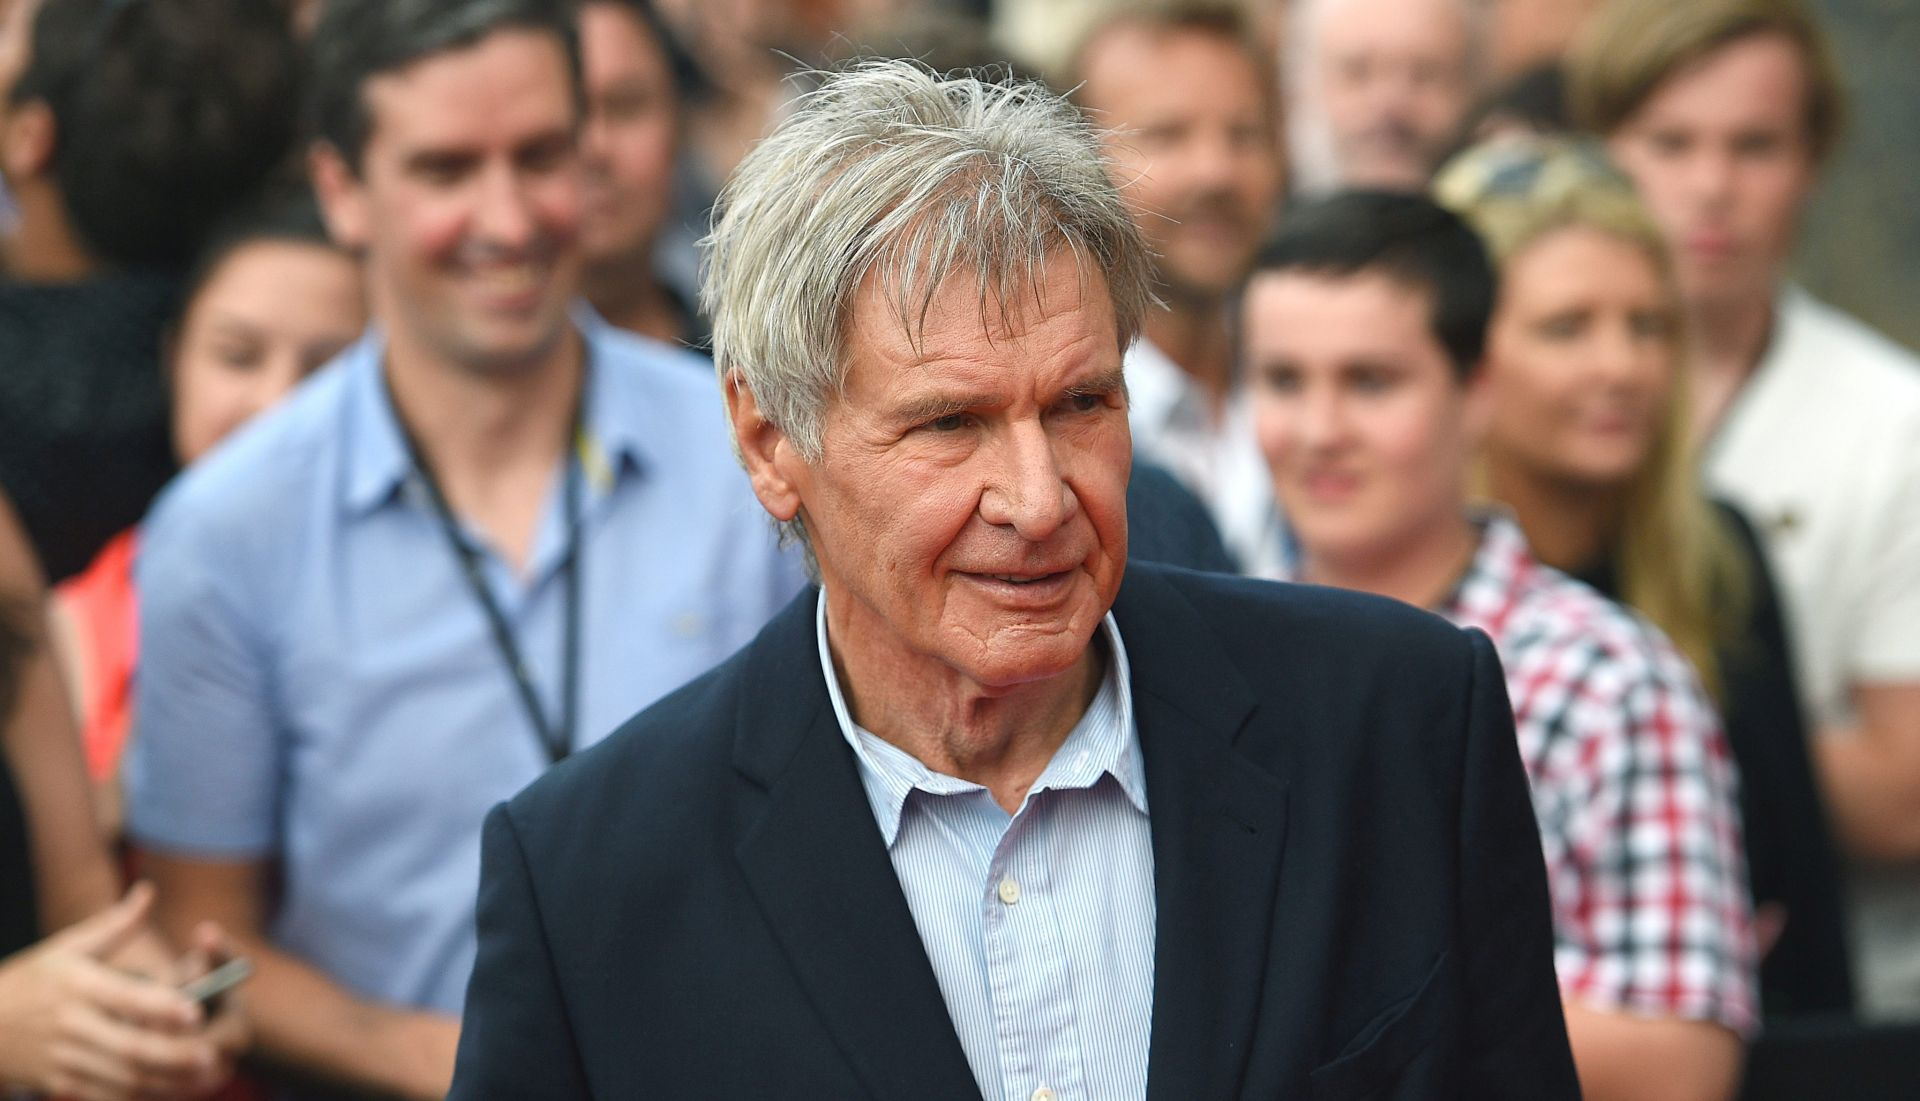 VIDEO: Harrison Ford bi trebao glumiti u novom remakeu filma 'Call of the Wild'